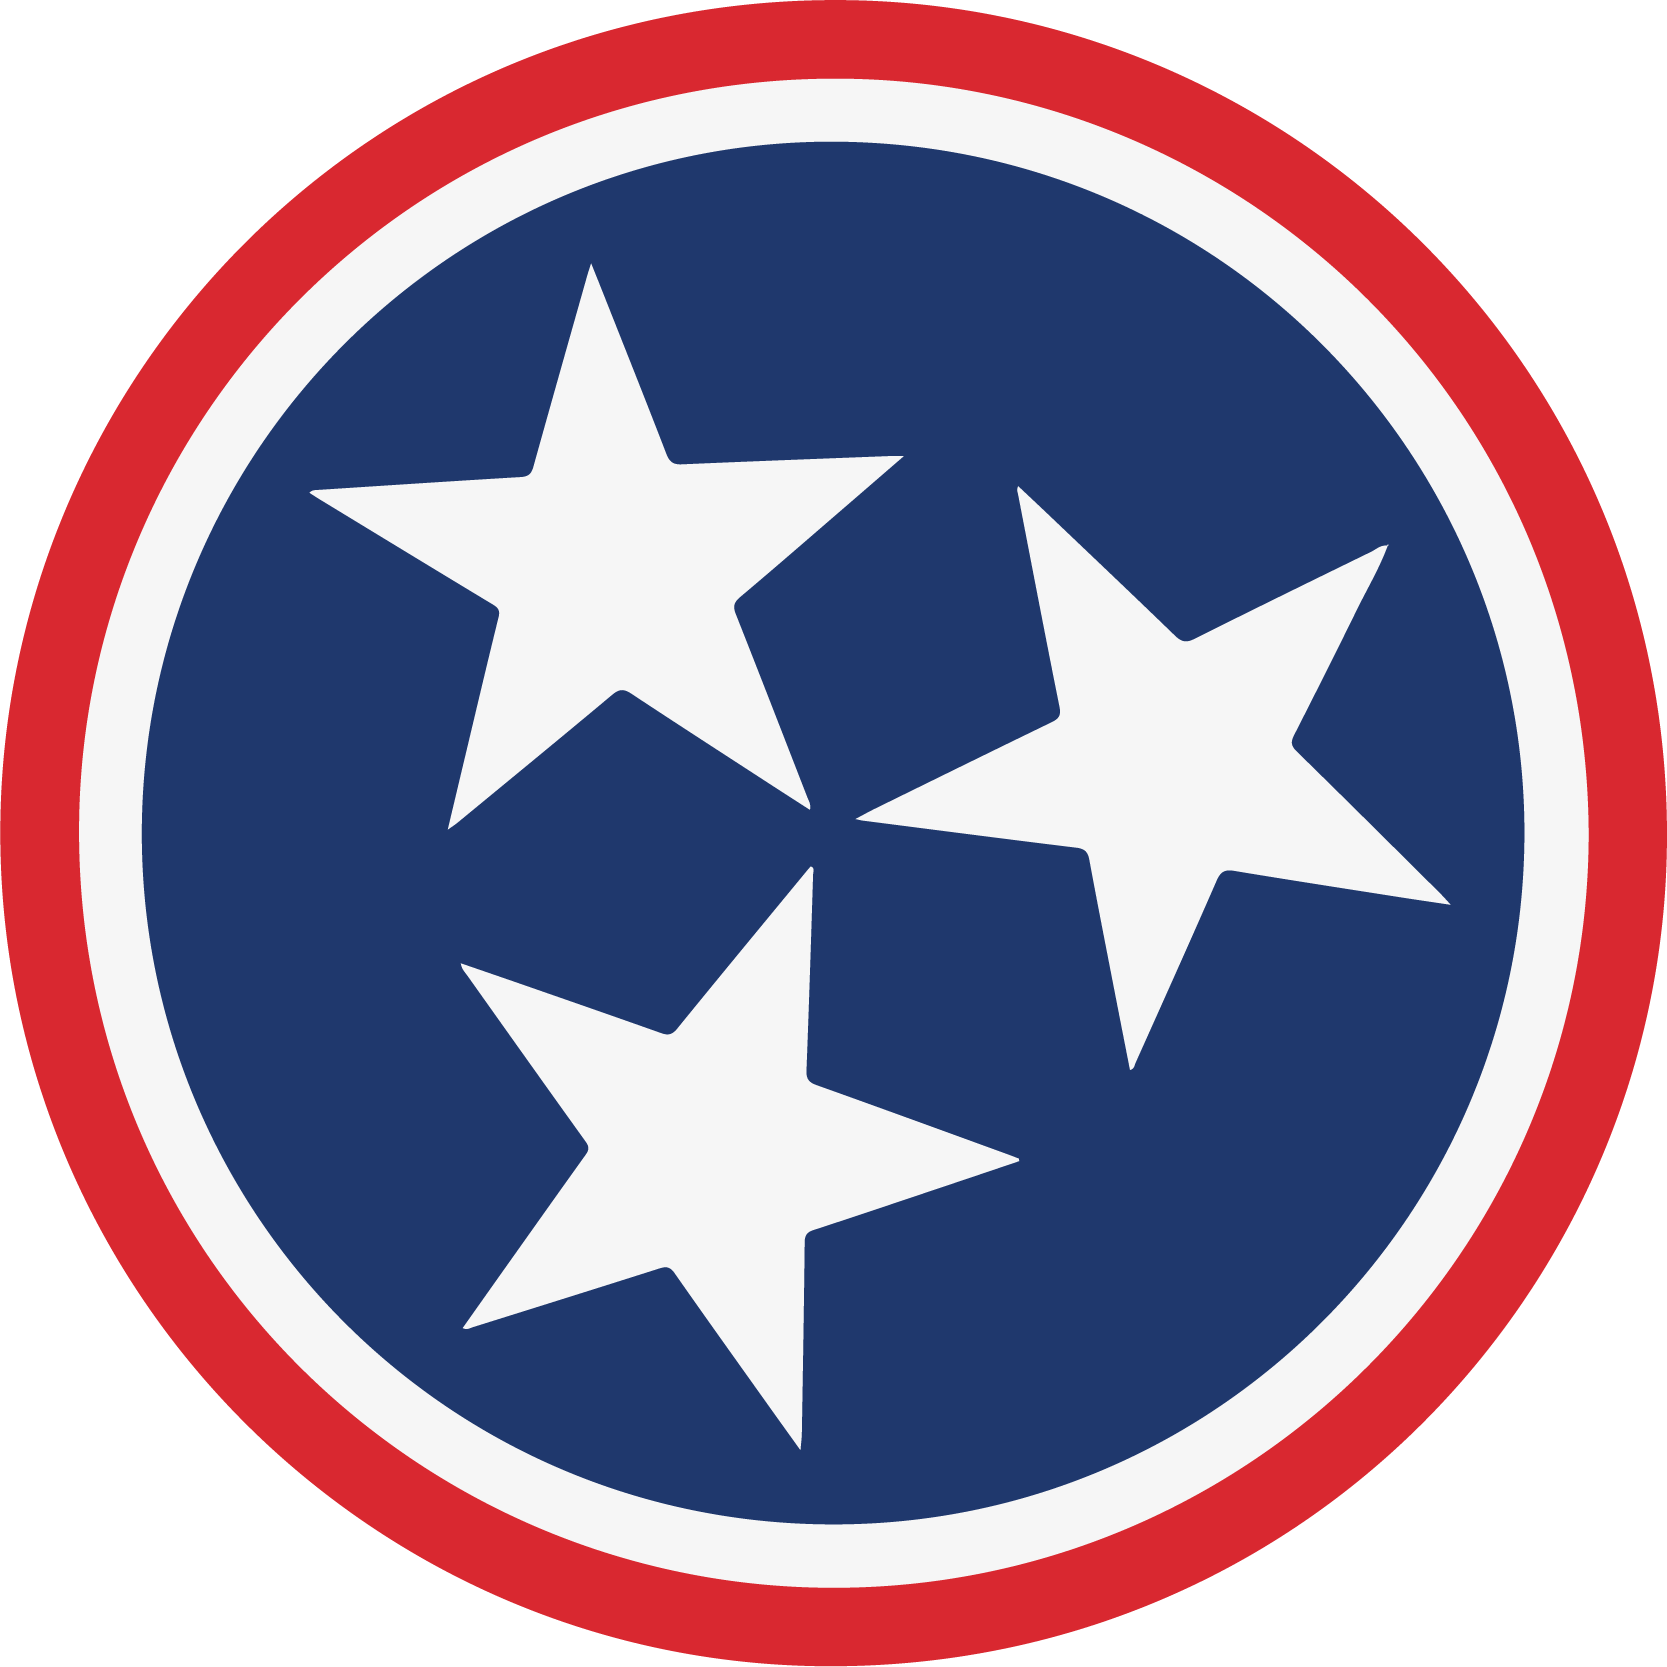 102-1024431_tennessee-png-vector-tennessee-tri-star